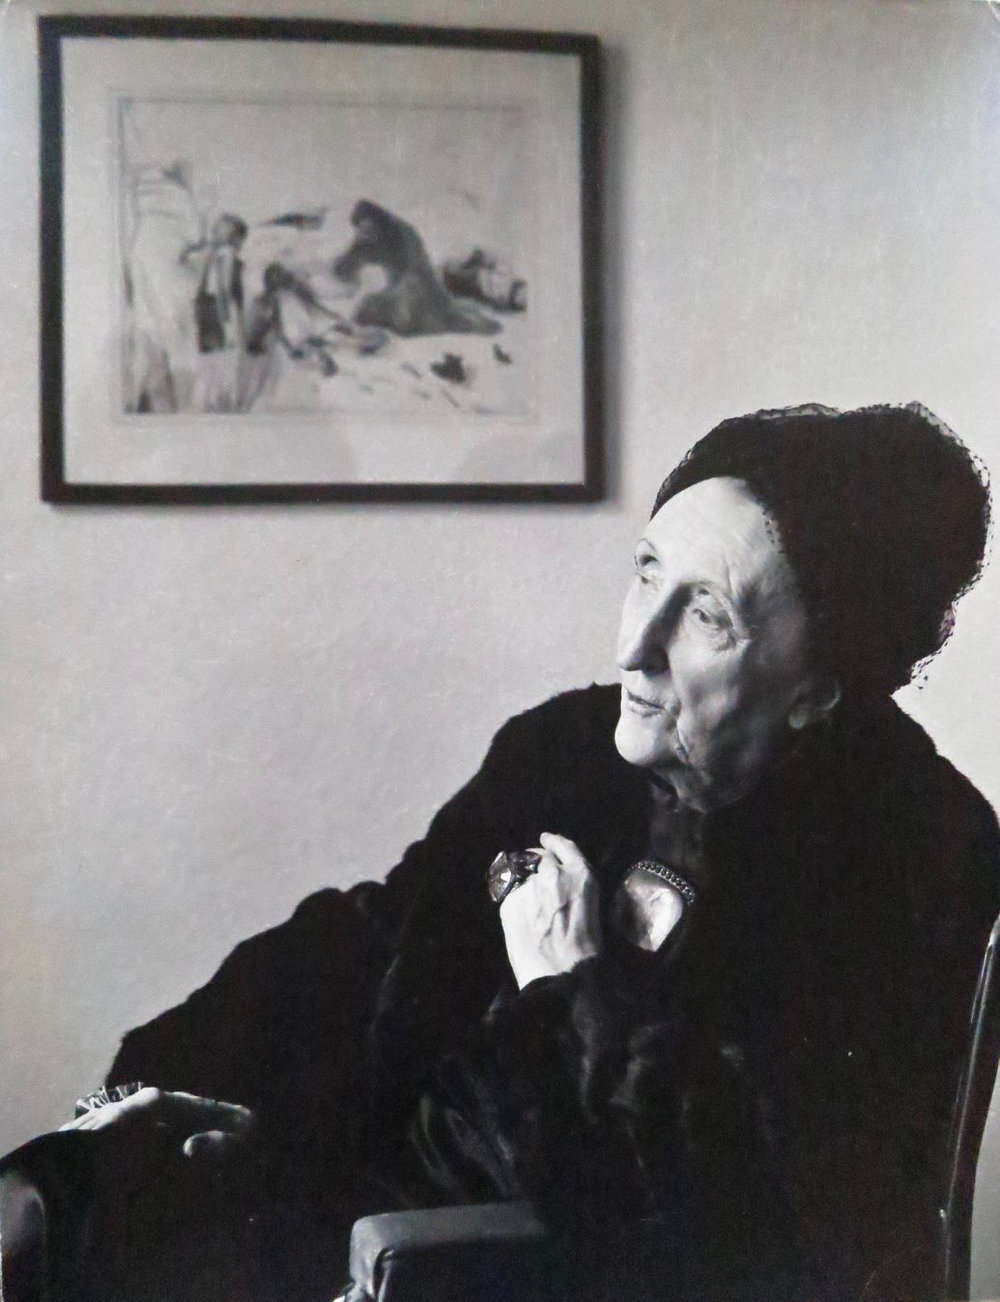 Edith Sitwell by Mark Gerson 1960 with picture by Pavel Tchelitchew on the wall.